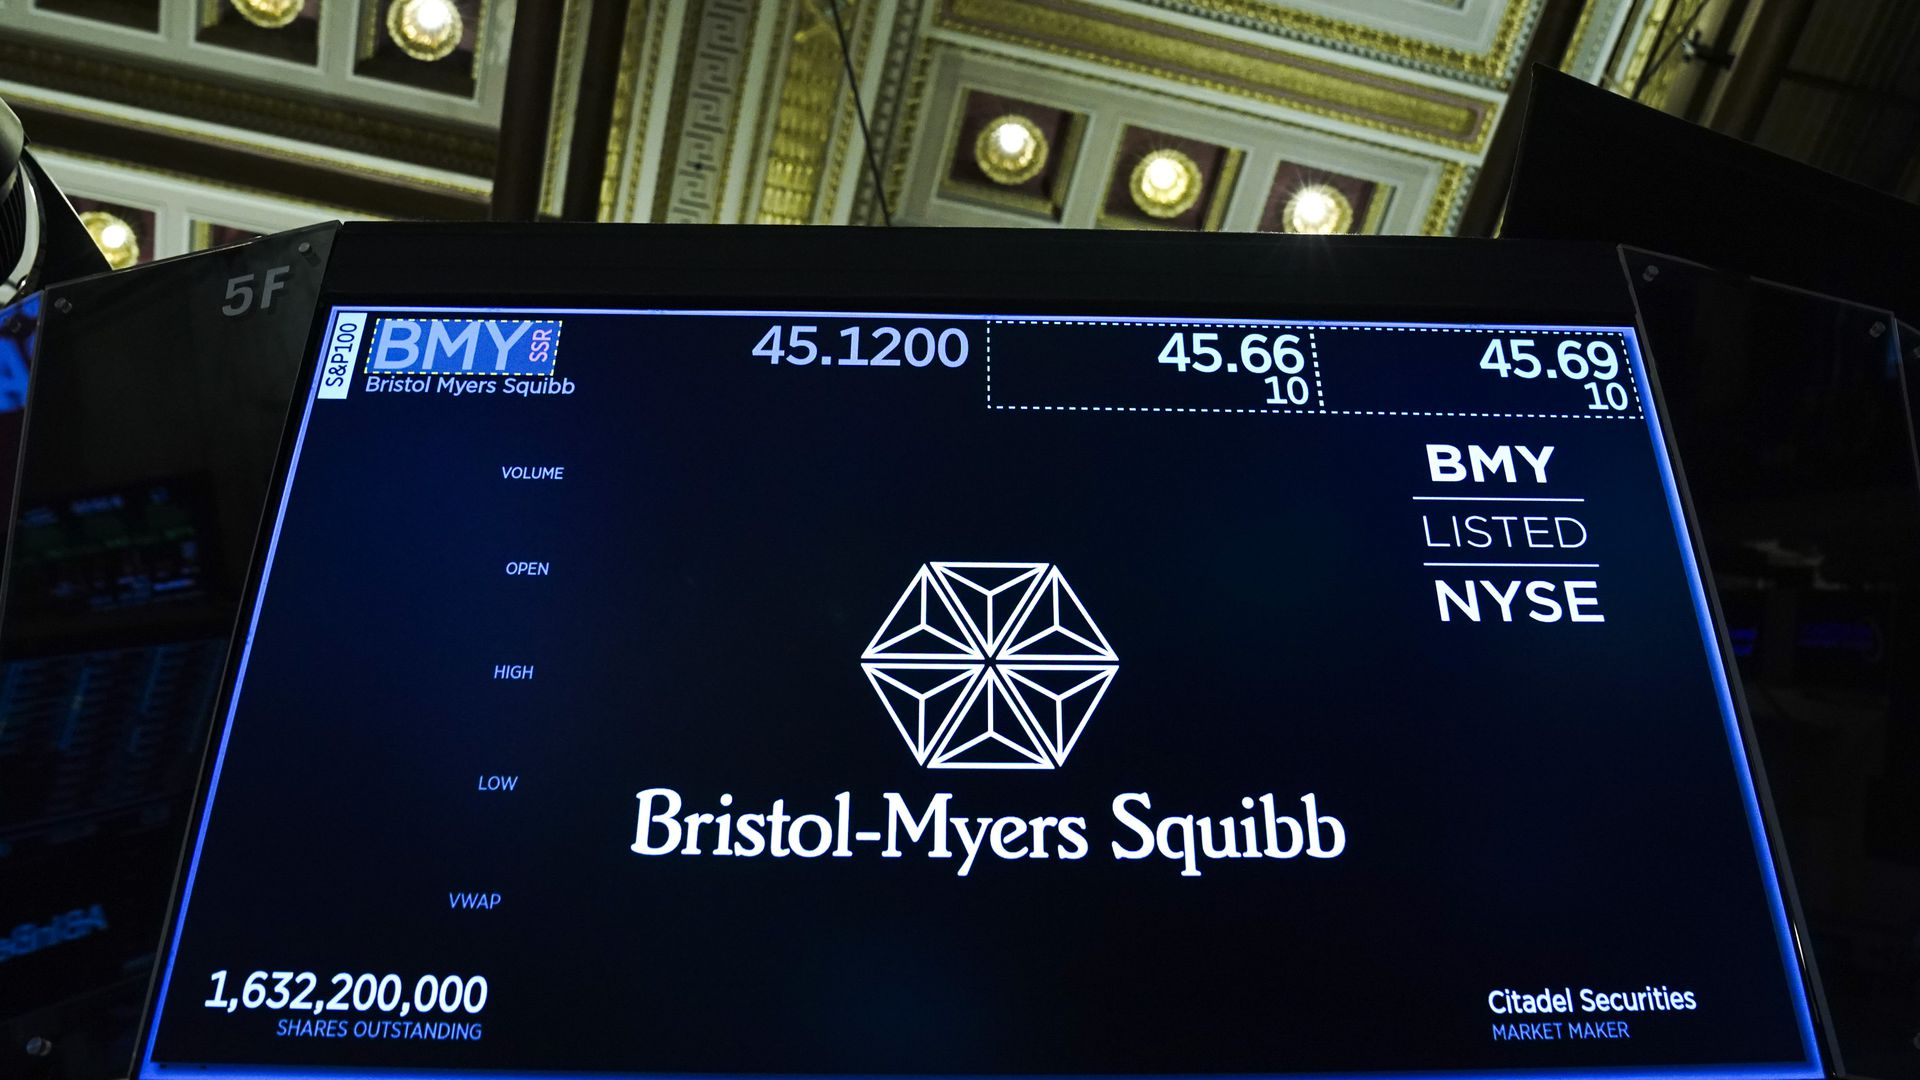 The Bristol-Myers Squibb logo on a computer screen in Wall Street